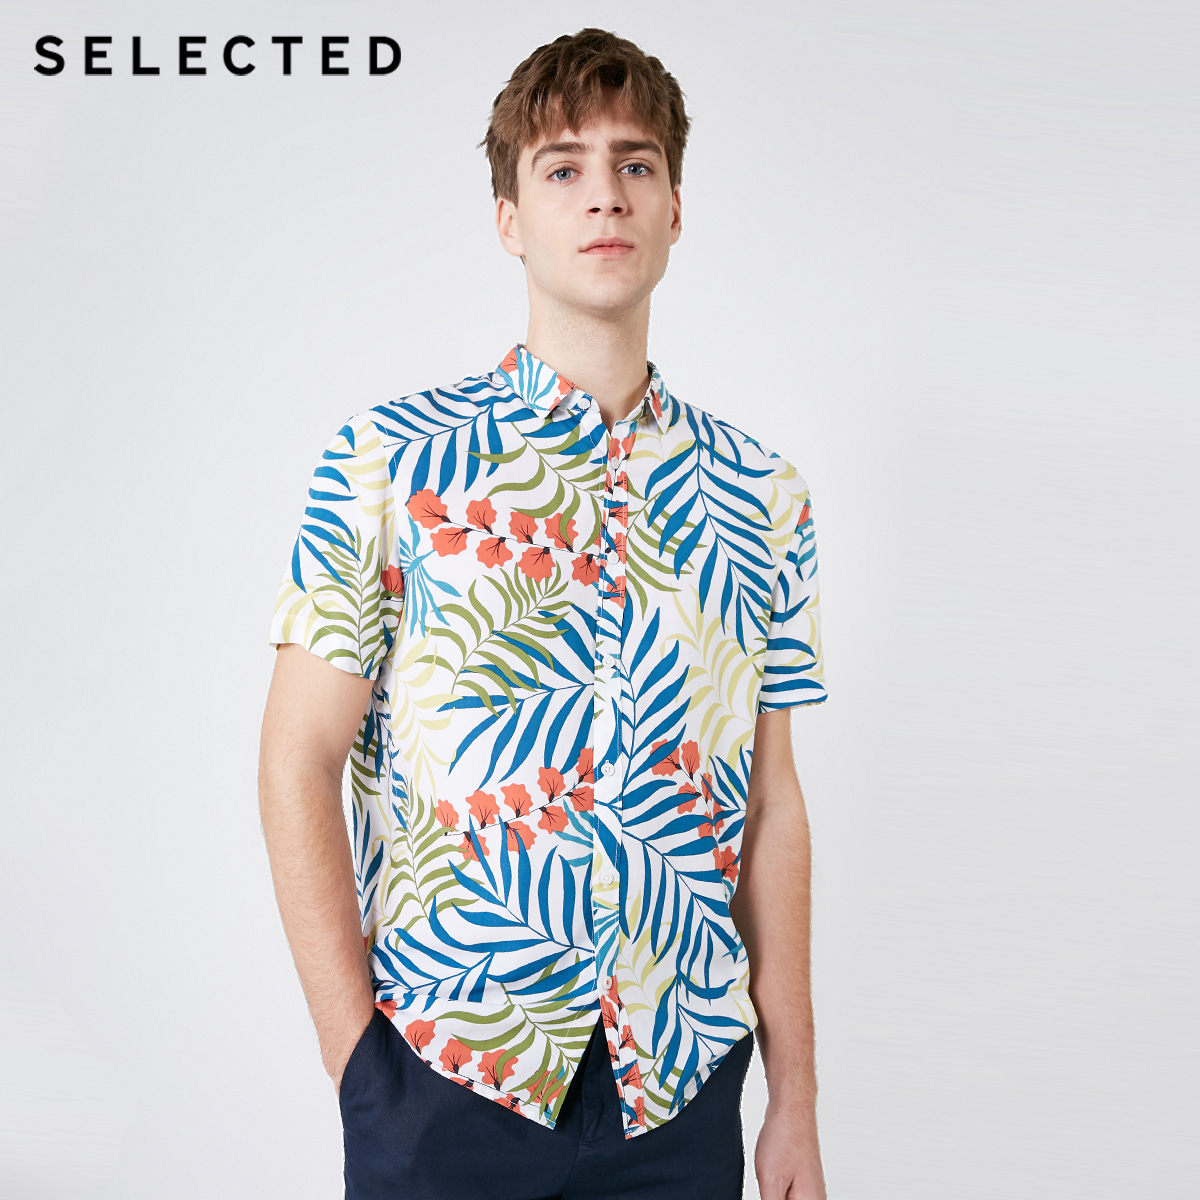 SELECTED Men's Loose Fit Printed Trend Short-sleeved Temperament Casual Shirt S|419204516